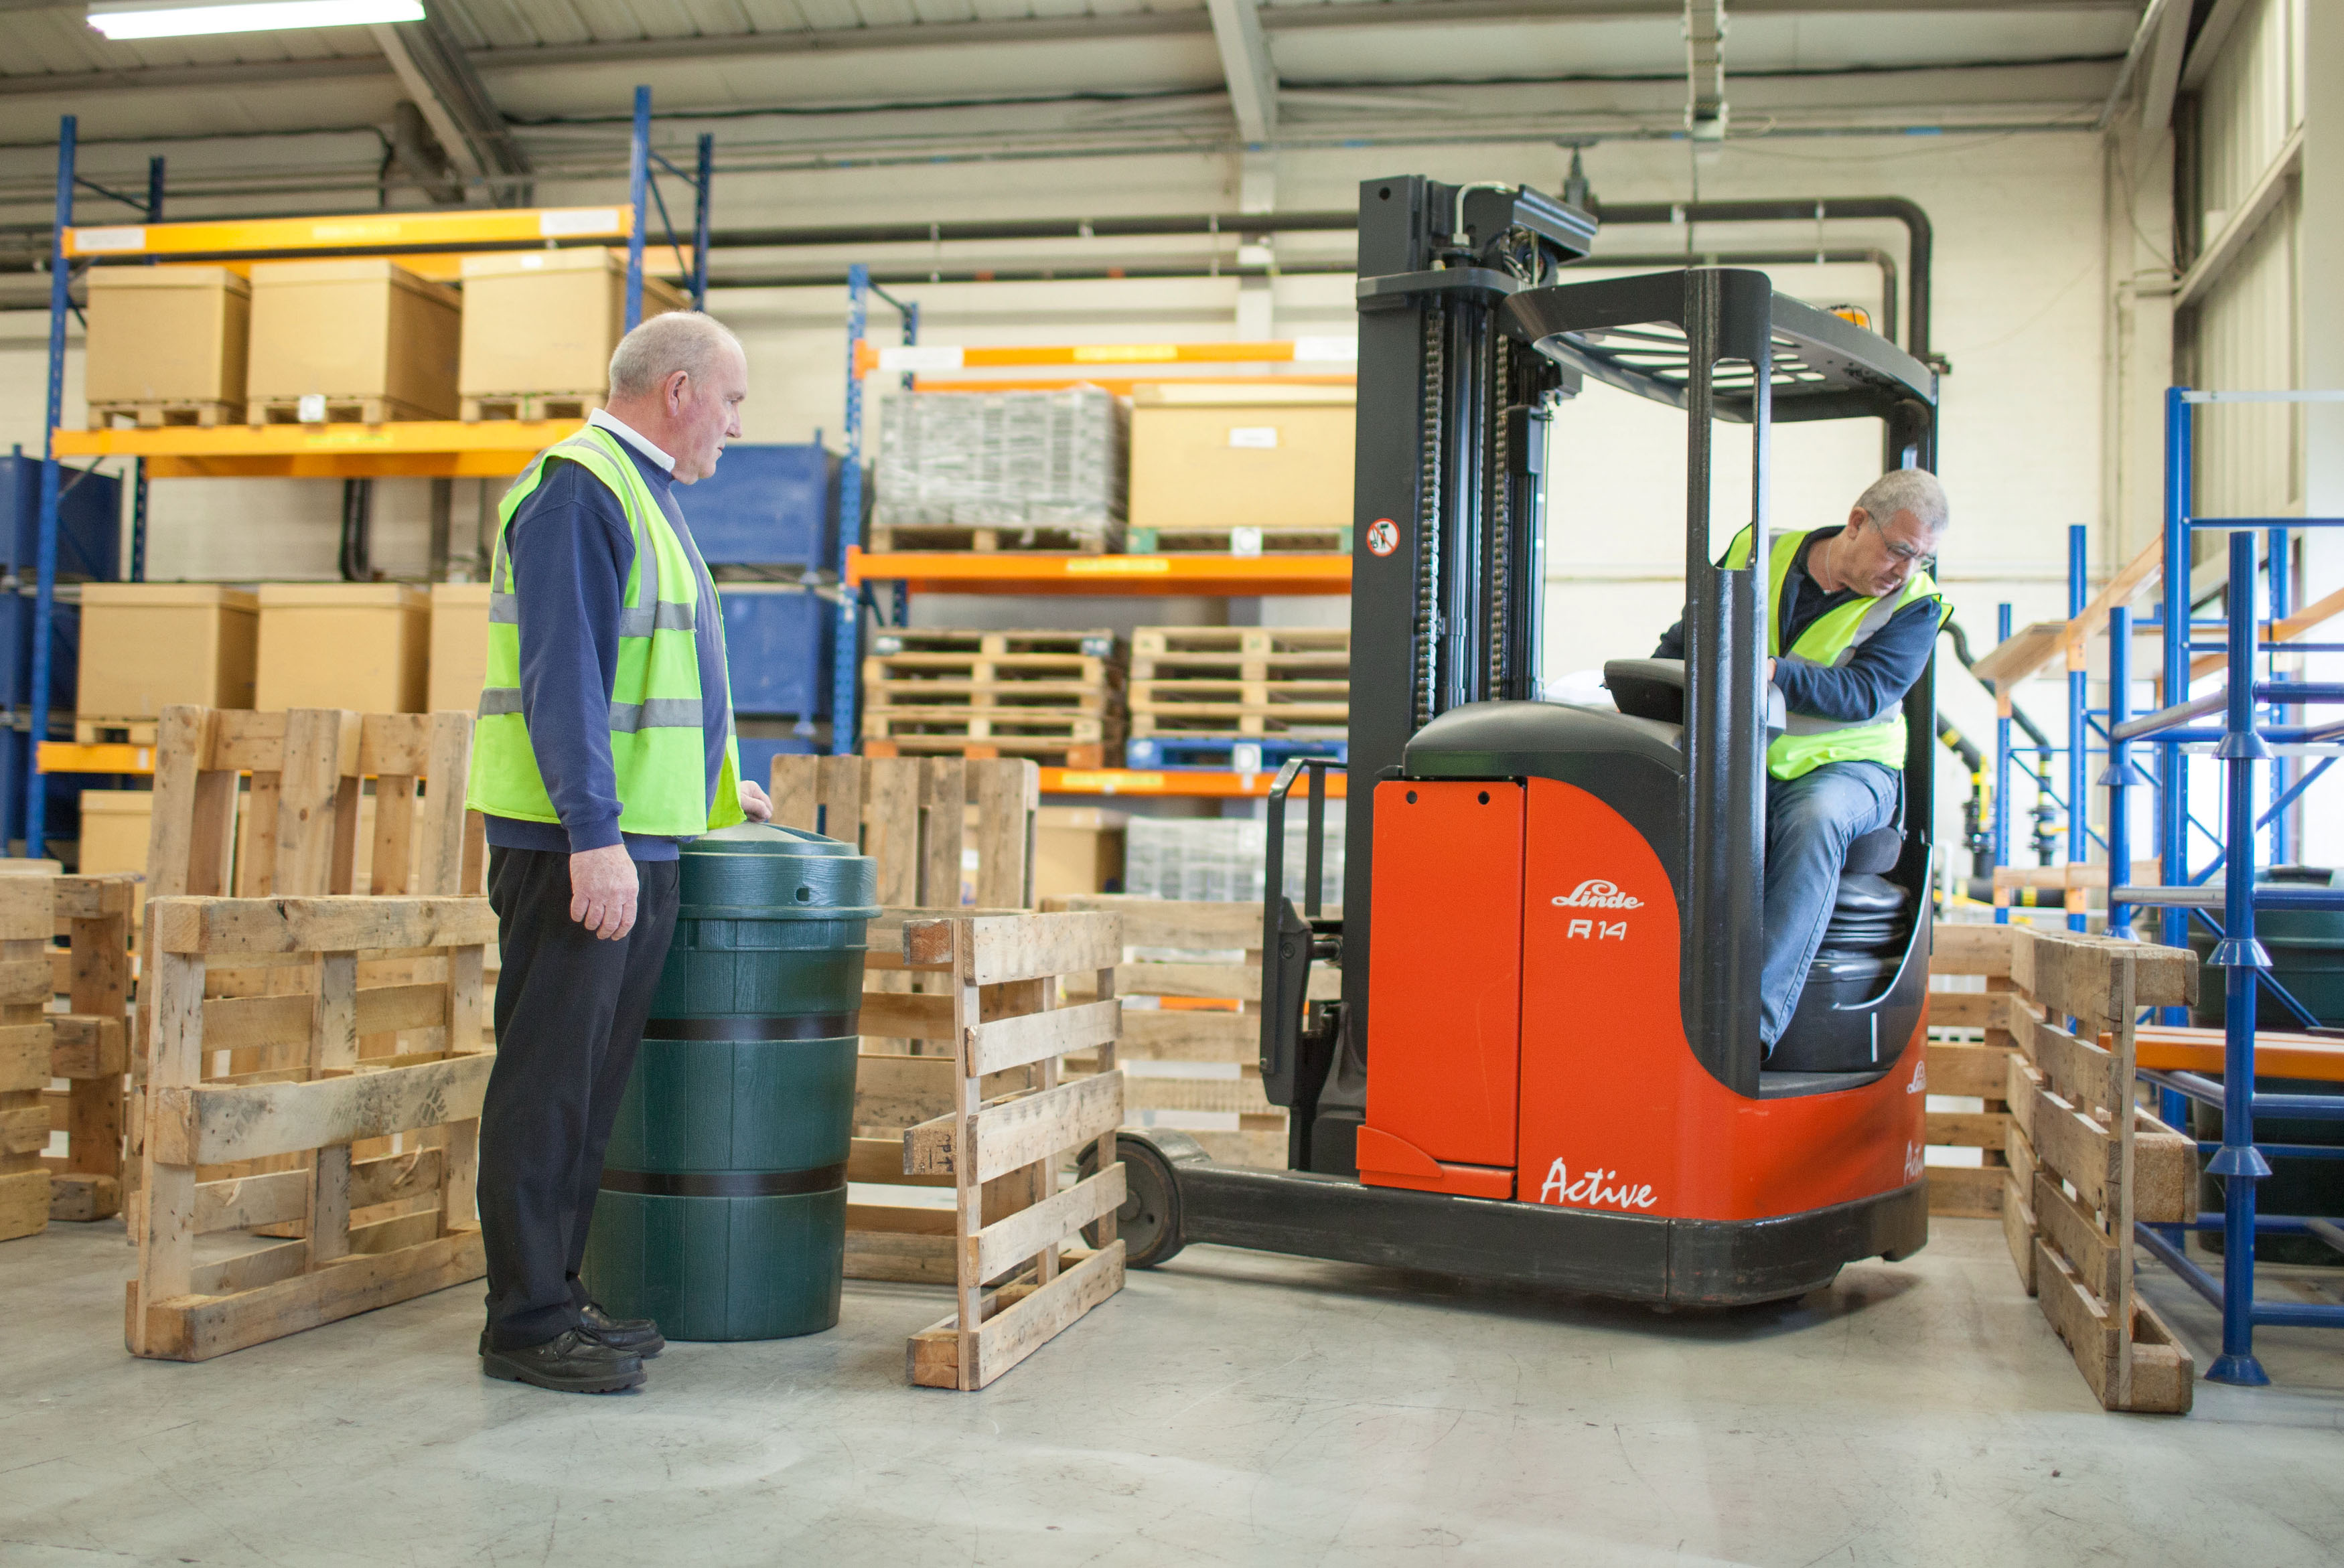 Forklift operator being trained